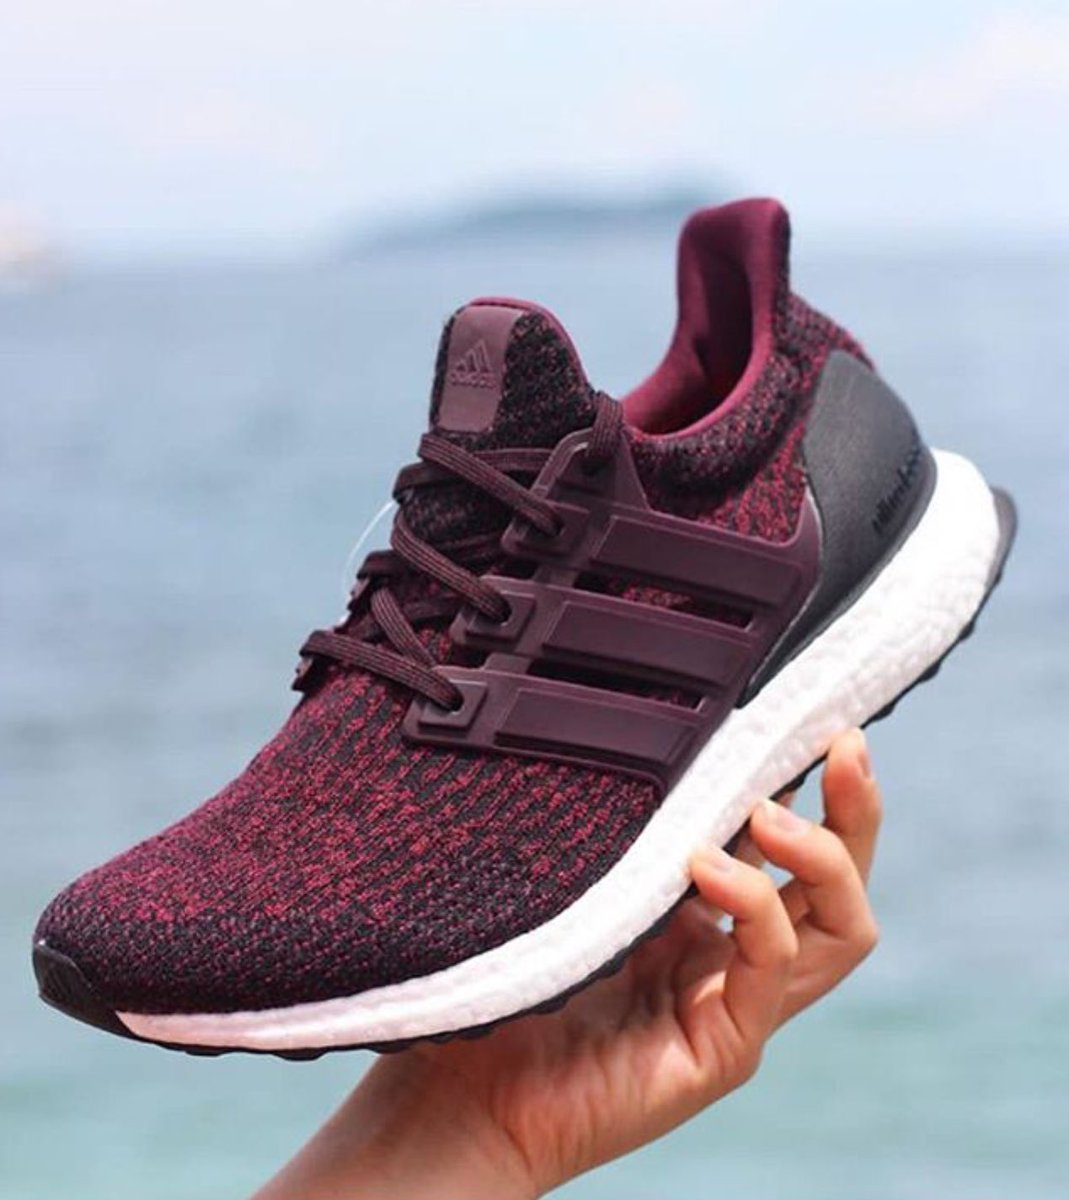 729221c8f ... best price champcarts on twitter adidas ultra boost 3.0 maroon auto  checkout need a personal for